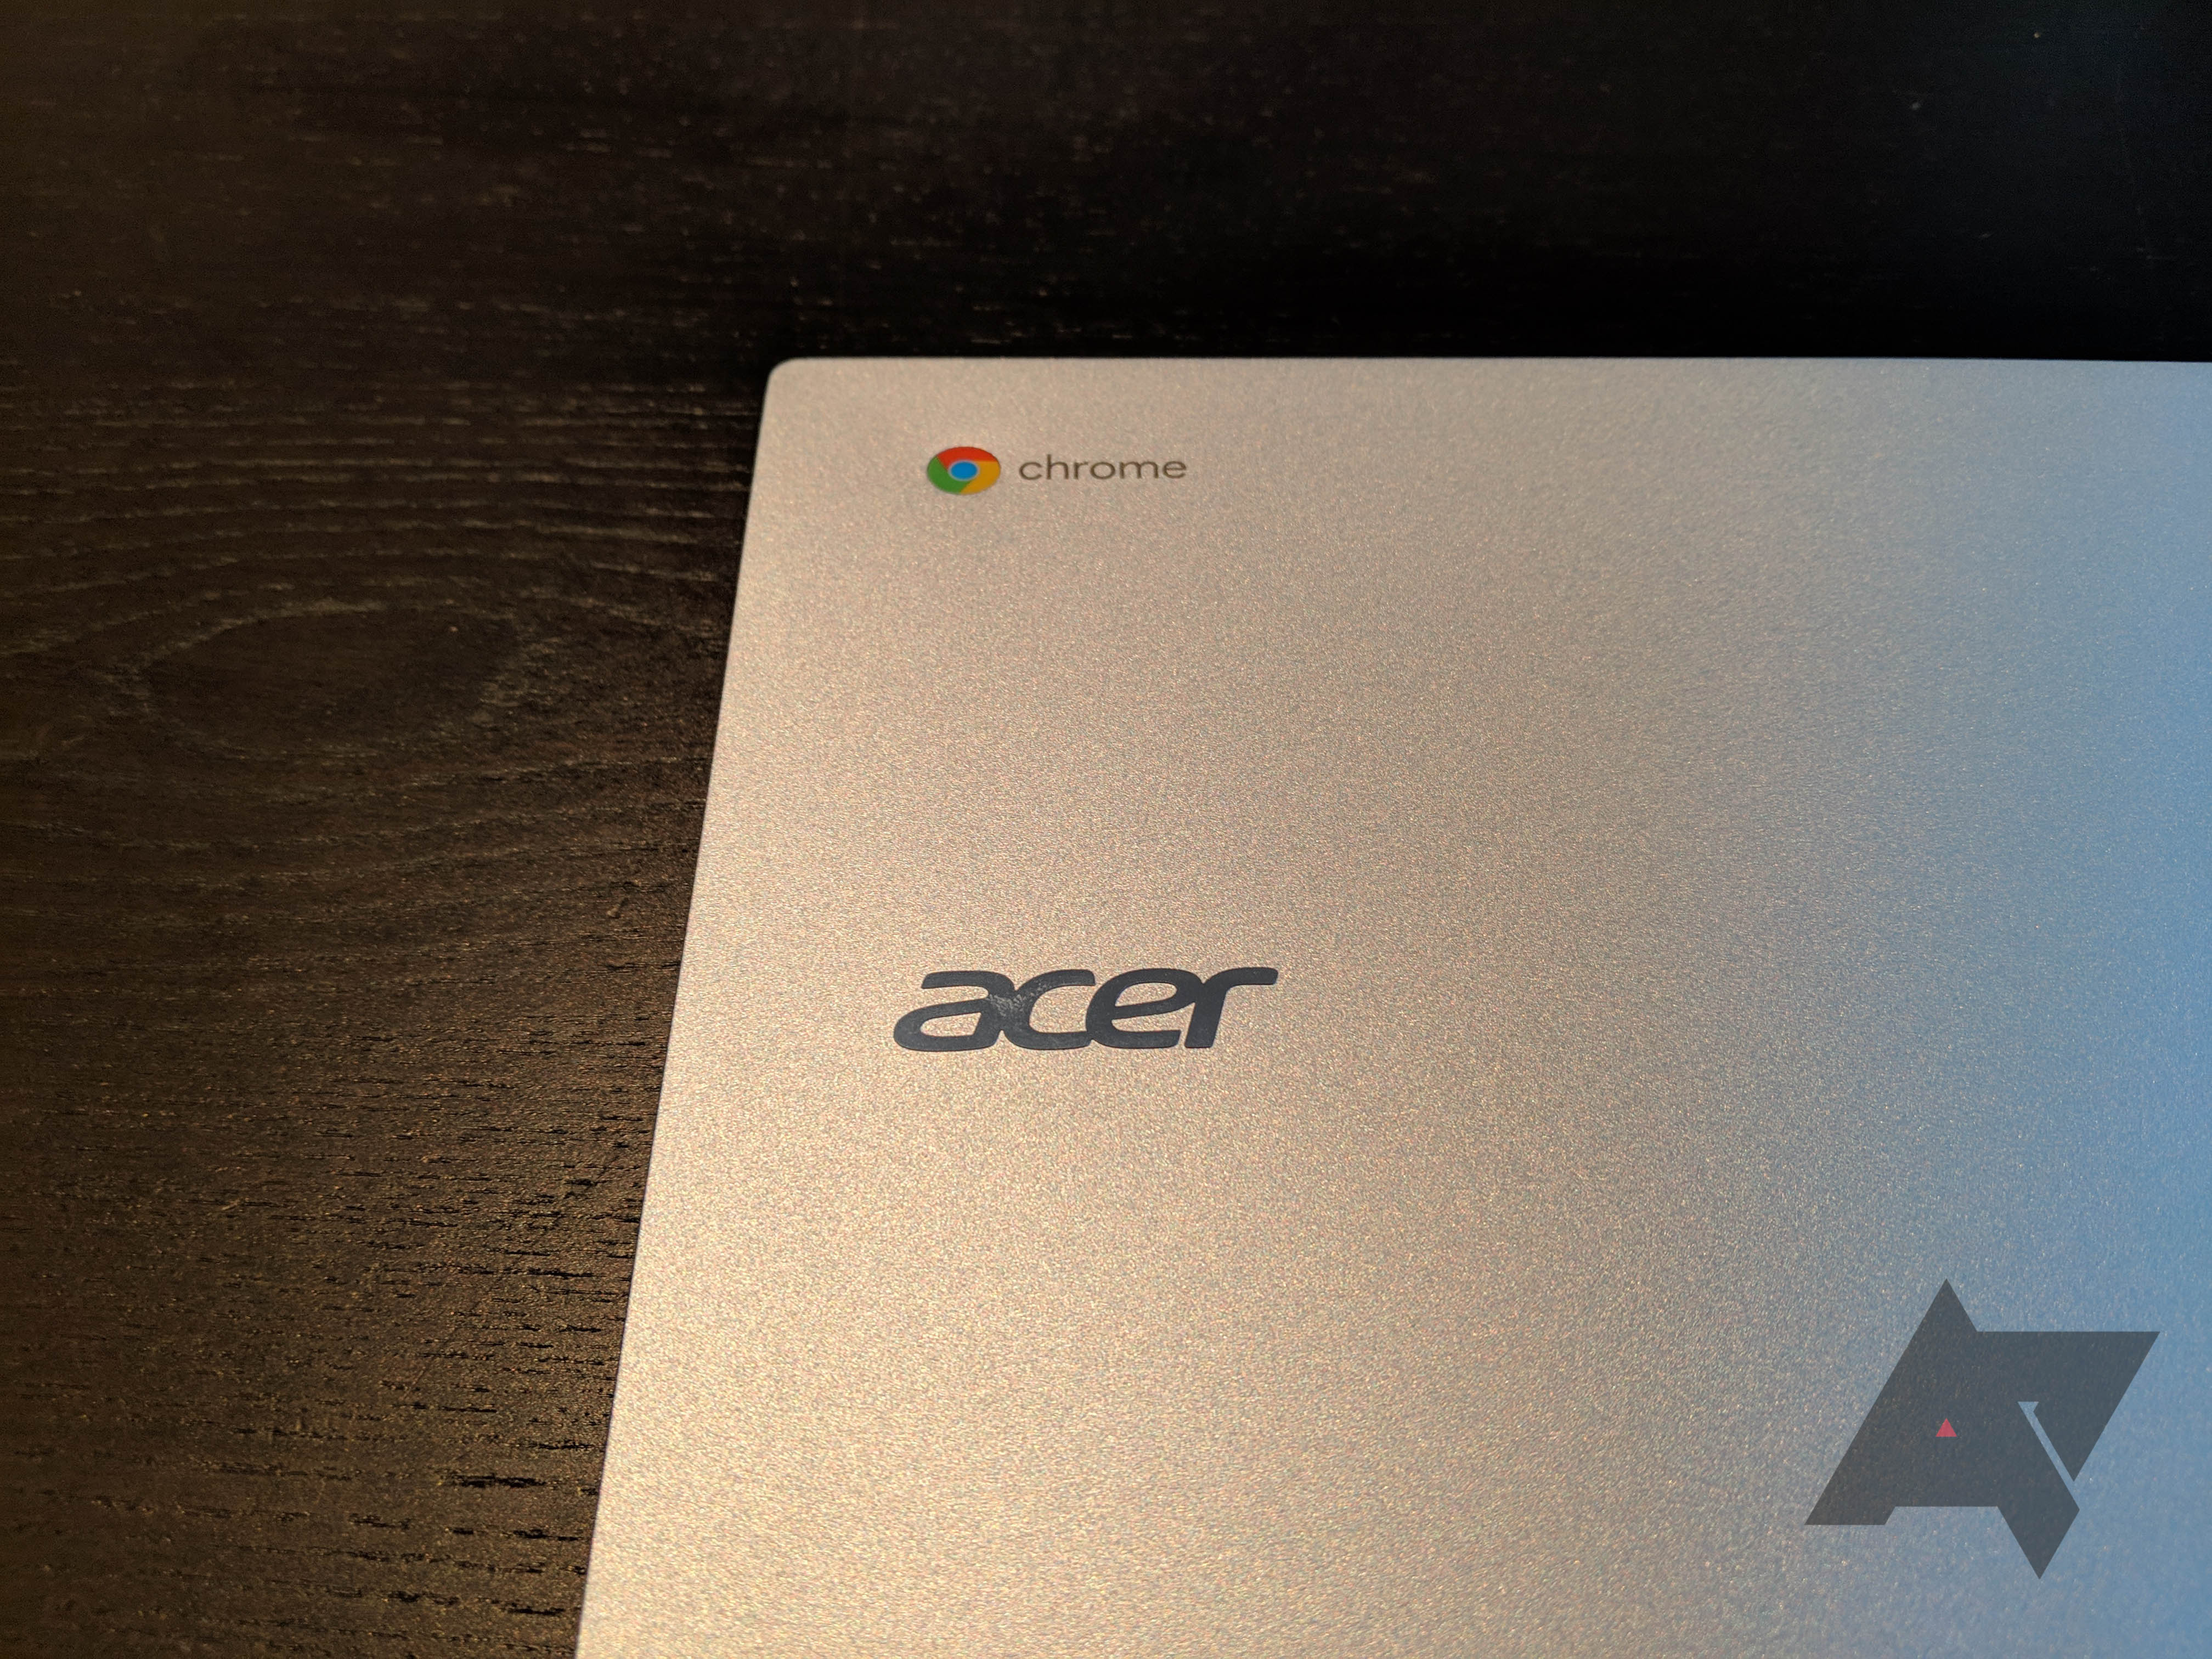 14-inch Acer Chromebook 514 down to $339 on Amazon ($60 off)